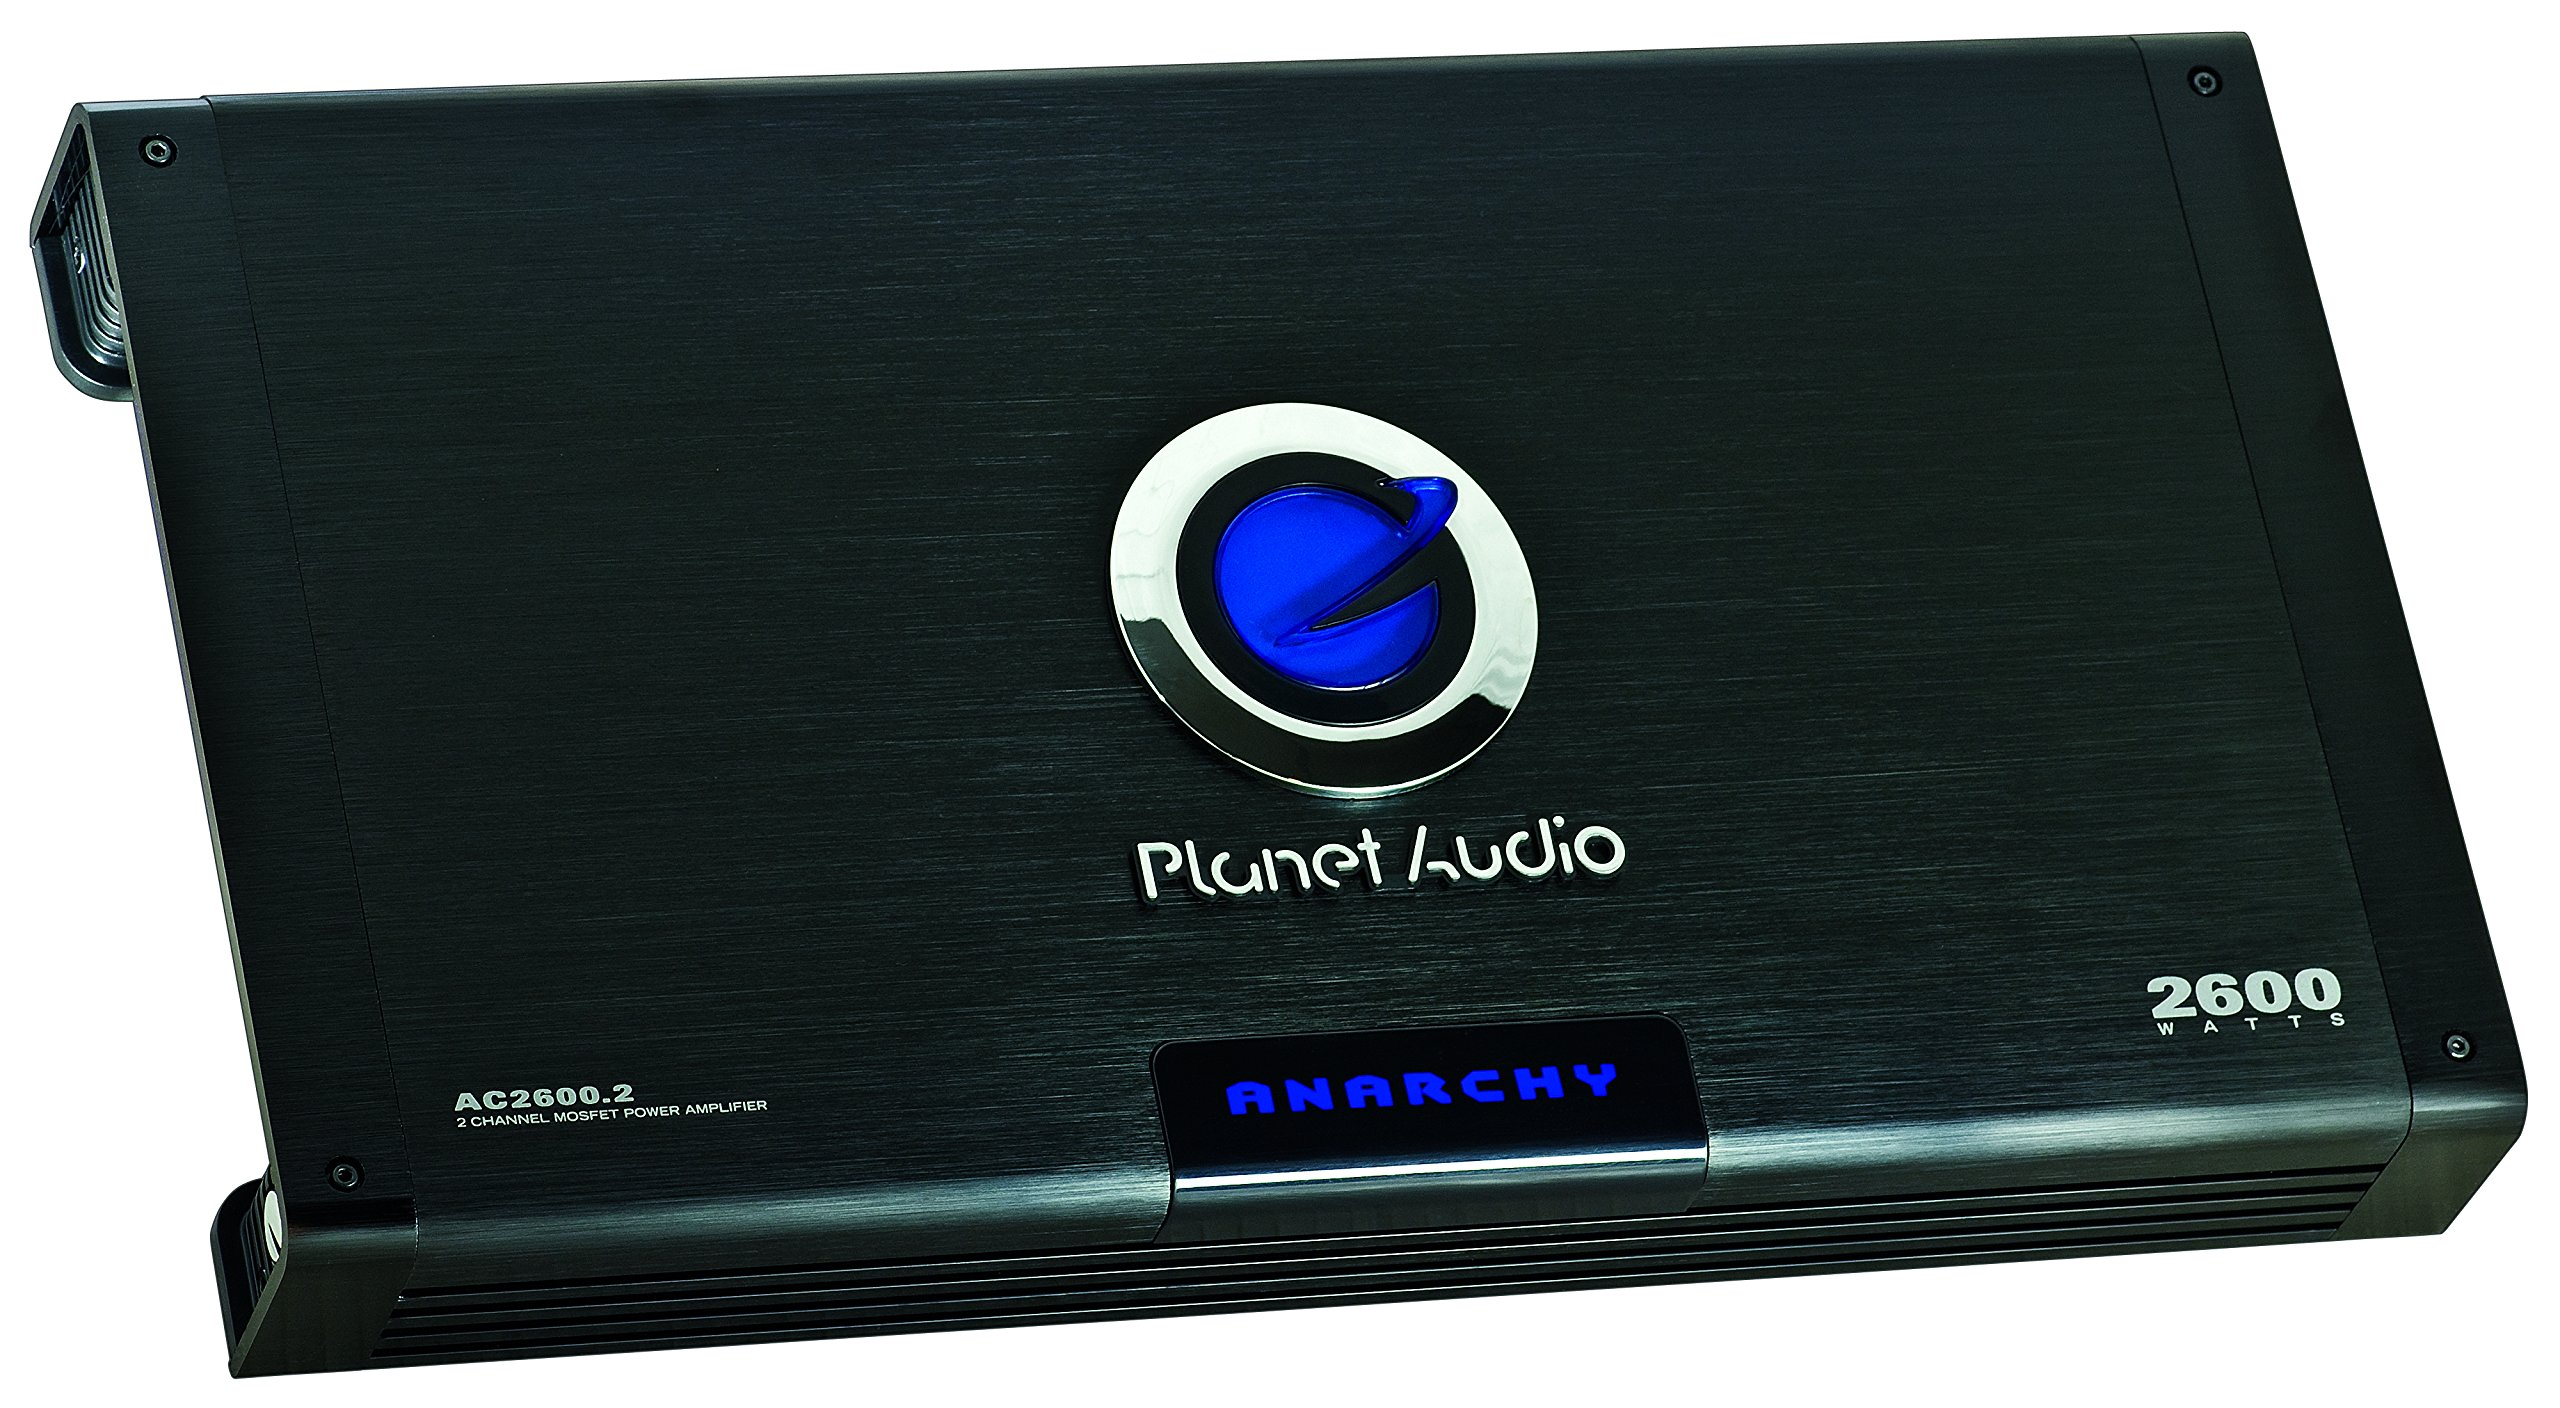 Planet Audio AC2600.2 Anarchy 2600 Watt, 2 Channel, 2/4 Ohm Stable Class A/B, Full Range, Bridgeable, MOSFET Car Amplifier with Remote Subwoofer Control by Planet Audio (Image #3)